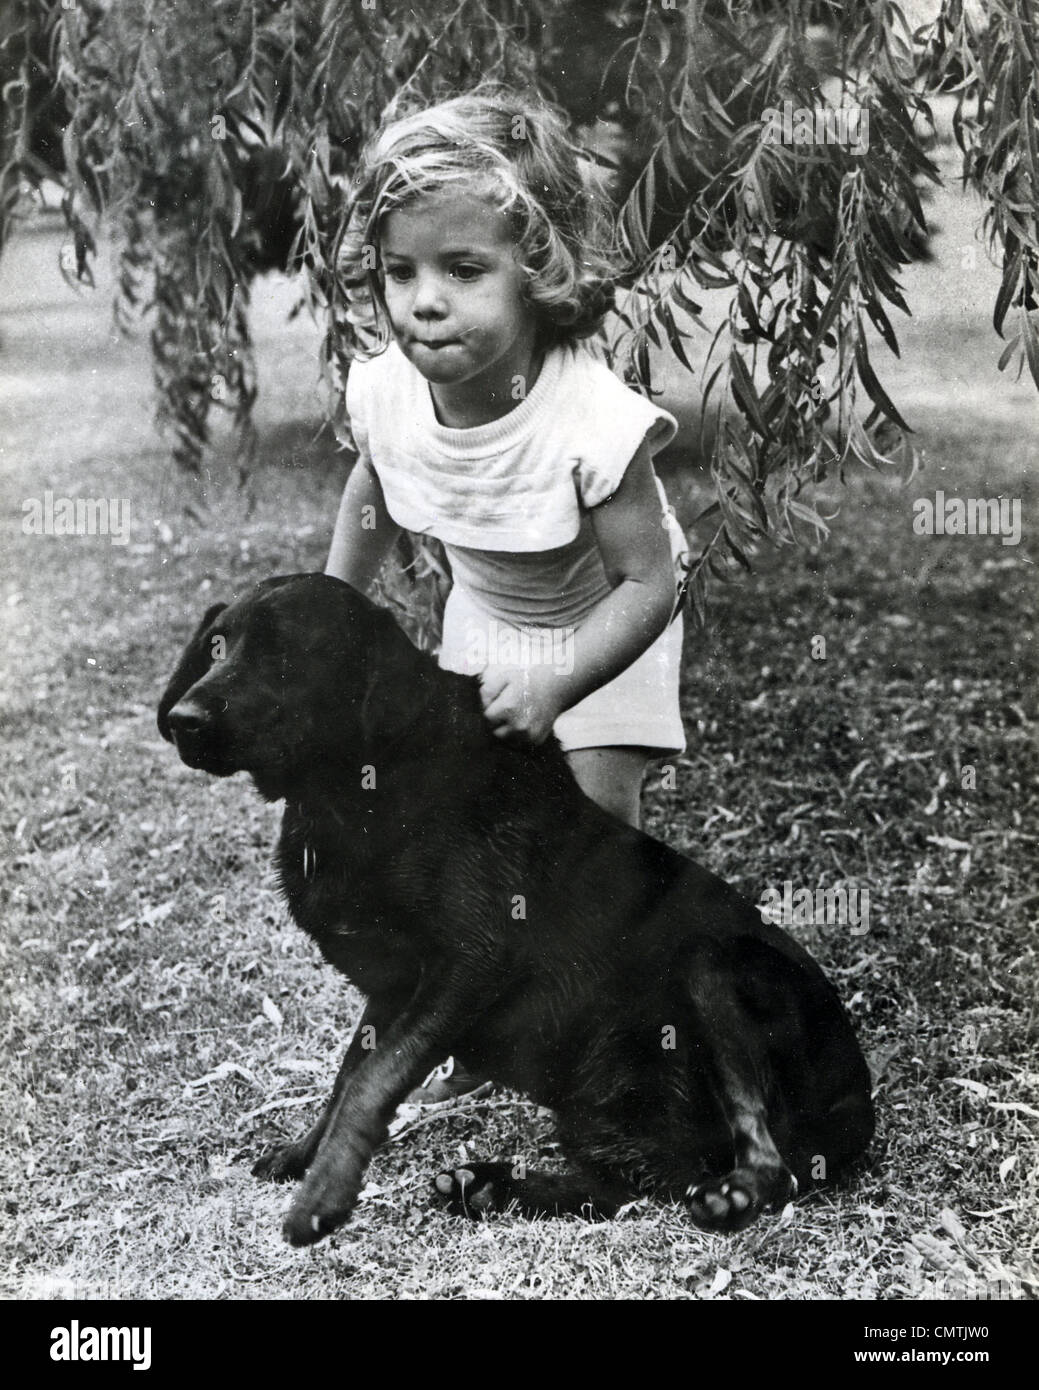 Caroline bouvier kennedy stock photos caroline bouvier kennedy caroline bouvier kennedy daughter of john and jackie kennedy about 1965 stock image altavistaventures Images